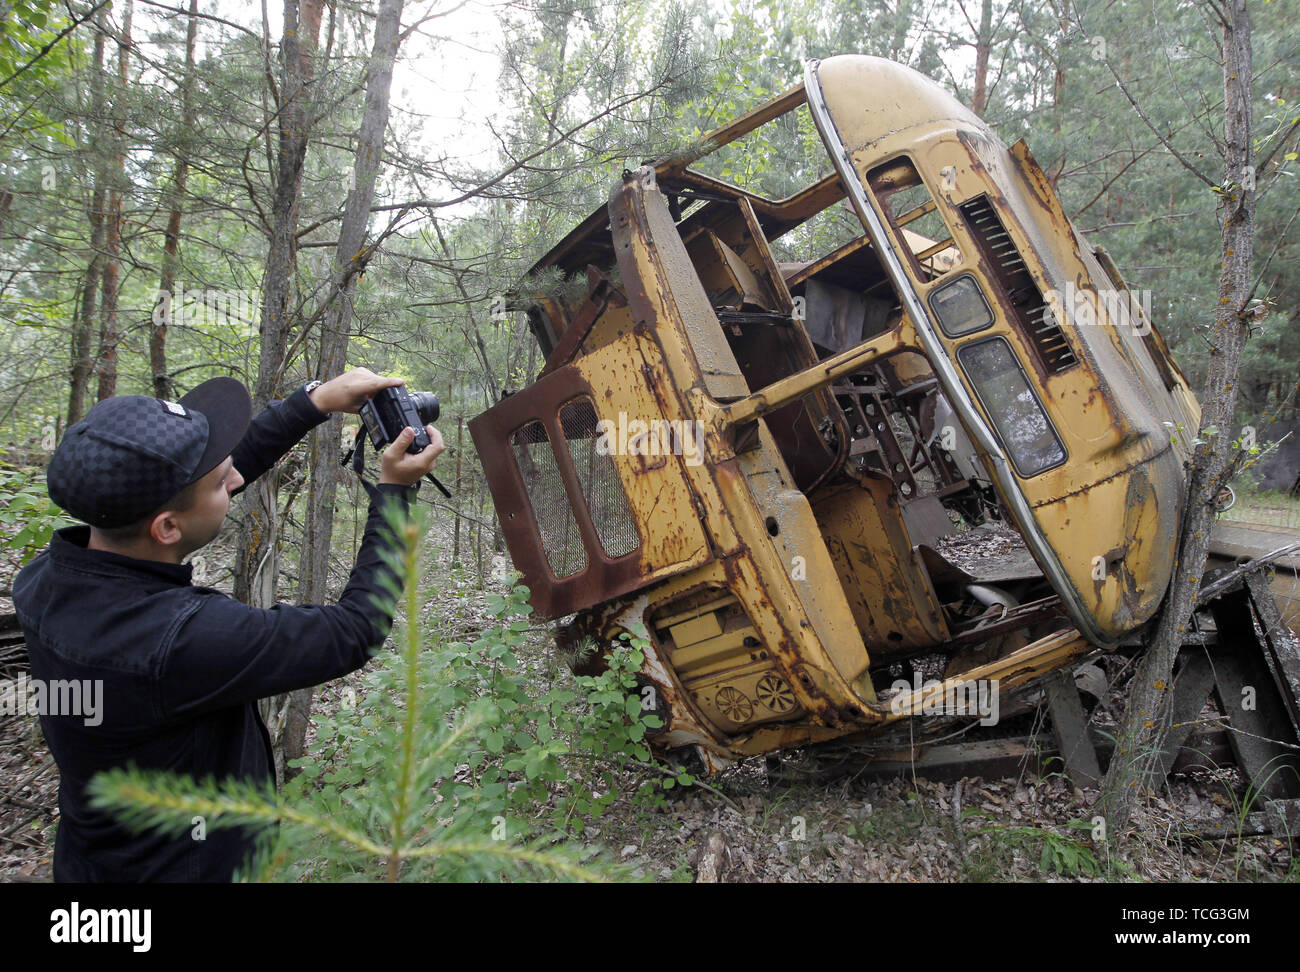 Kiev, Ukraine. 7th June, 2019. A visitor takes a photo wreckage of a bus in the abandoned city of Pripyat, near the Chernobyl nuclear power plant, Ukraine, on 7 June 2019. The success of a U.S. HBO's television miniseries 'Chernobyl' has renewed interest around the world on Ukraine's 1986 nuclear disaster. Tourism to Chernobyl has spiked 40% following the debut of the HBO series in May, tour agencies reported . Last April Ukrainians marked the 33rd anniversary of the Chernobyl disaster in then-Soviet Ukraine, caused by a botched safety test in the fourth reactor of the atomic plant that sen - Stock Image